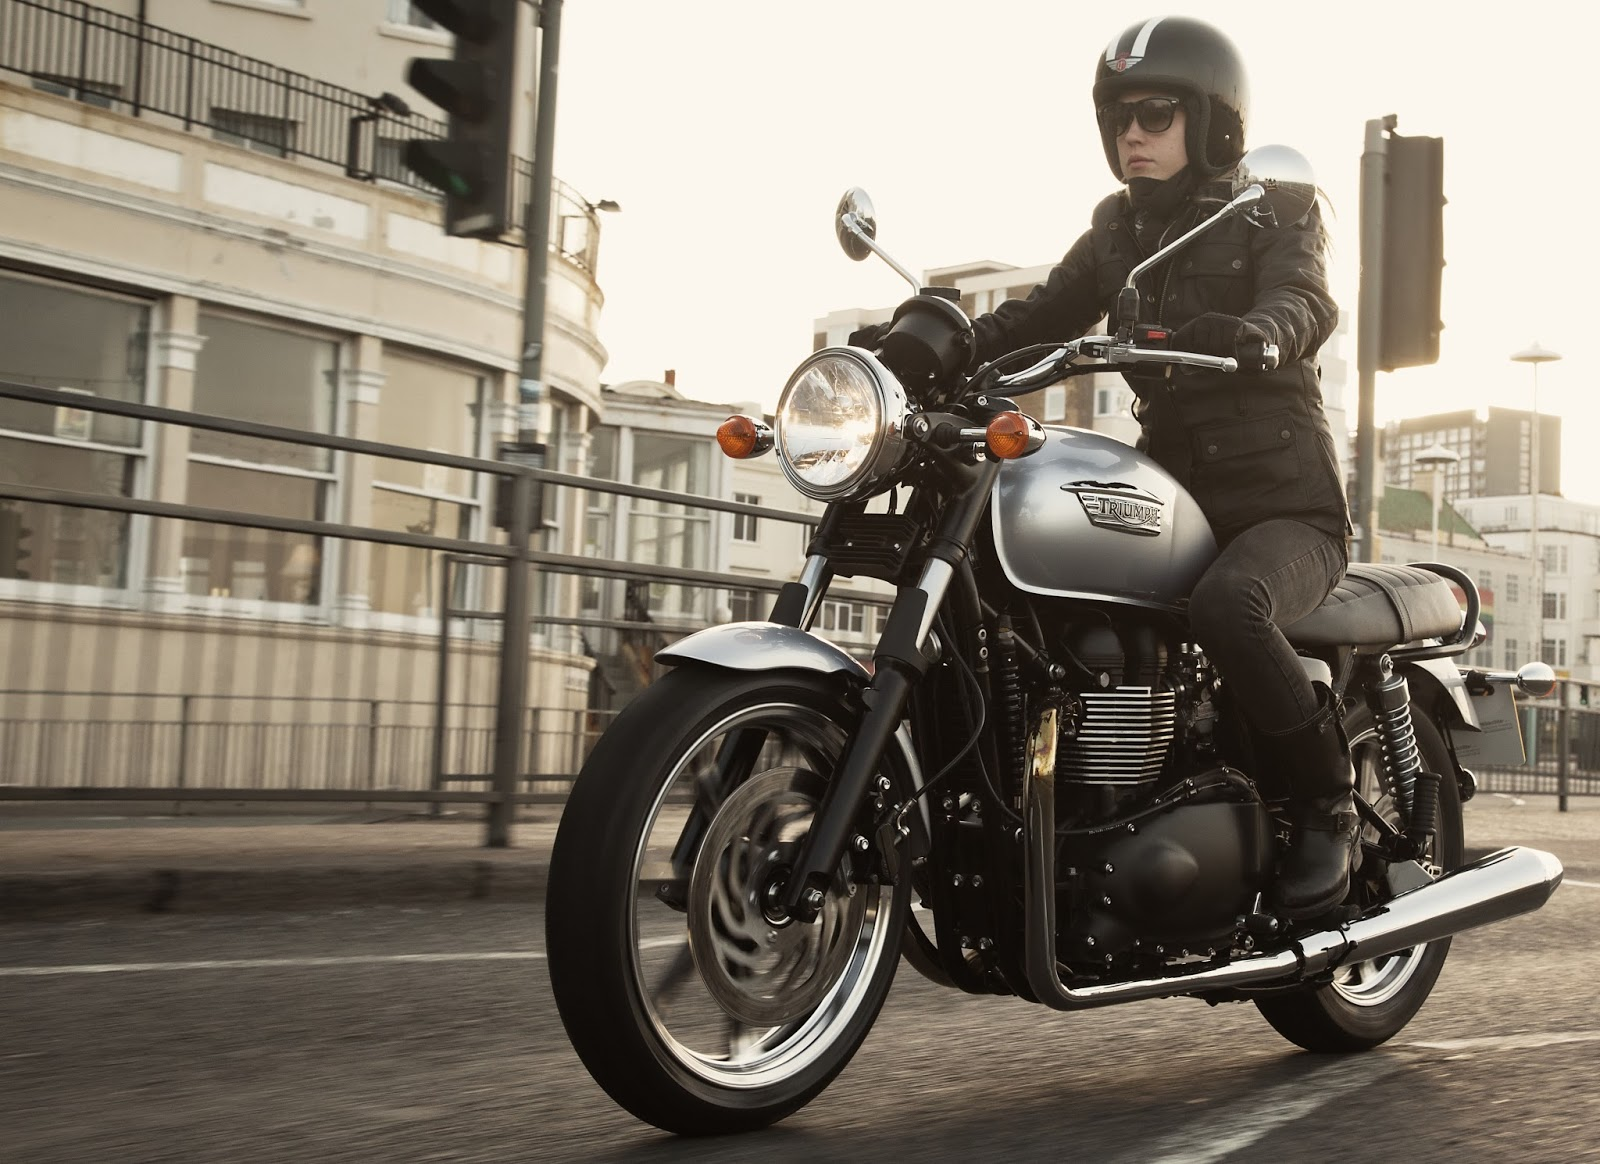 2014 Triumph motorcycles